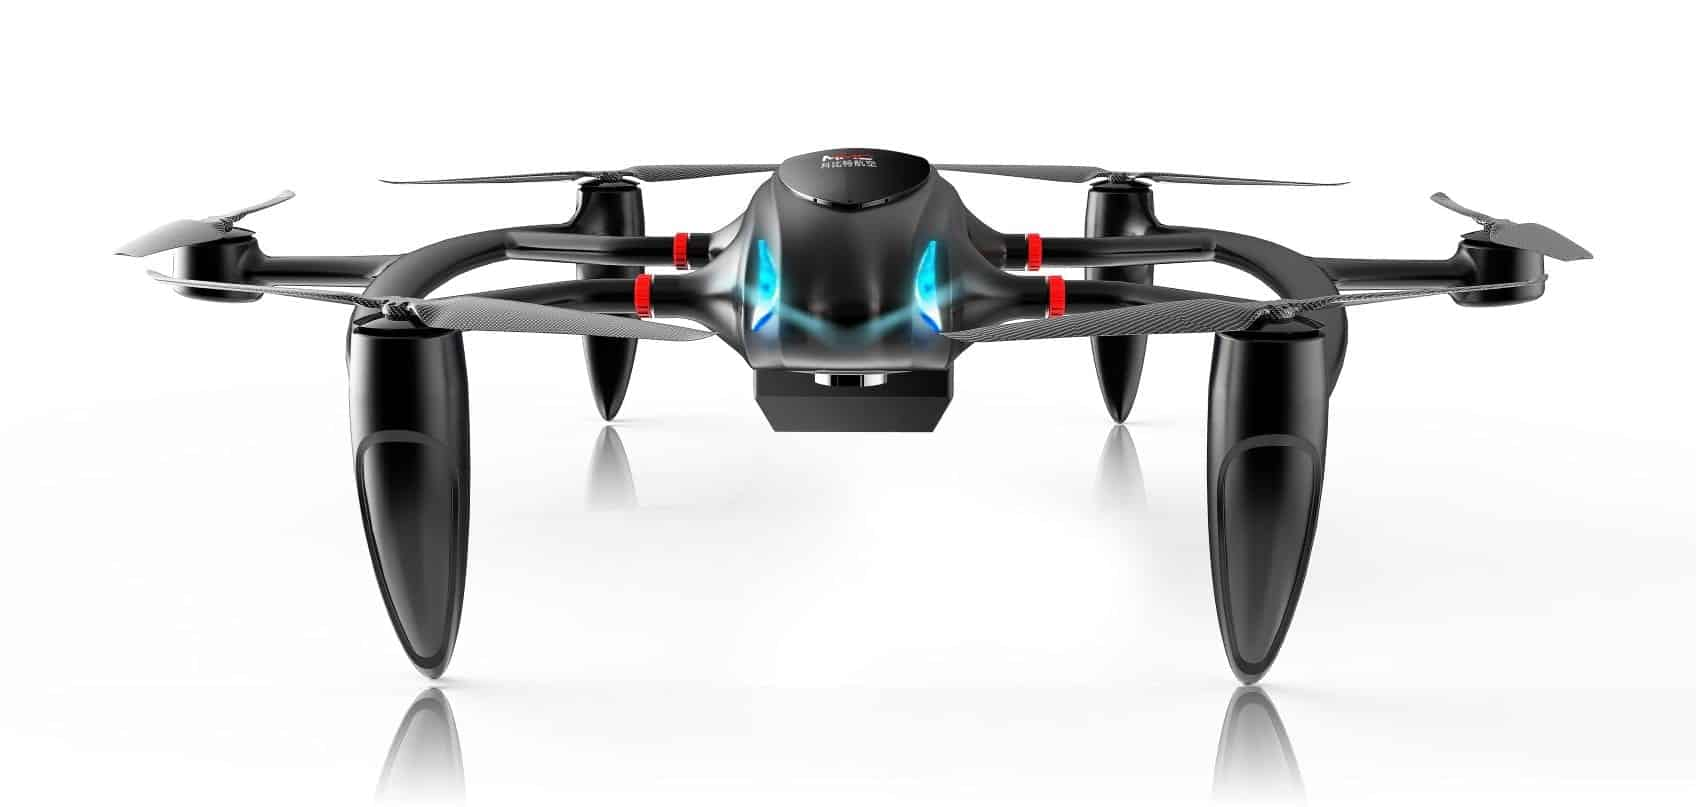 tether drone with Mmc Announces Second Generation Hydrogen Fuel Cell Drone on Underwater Drones Blueye Powerray additionally Exoskeletons New And Older additionally Beats Drops New Solo2 Wireless Headphones besides Russia Creates Death Ray Uses Microwaves Knock Enemy Drones Mile Away in addition Mmc Announces Second Generation Hydrogen Fuel Cell Drone.